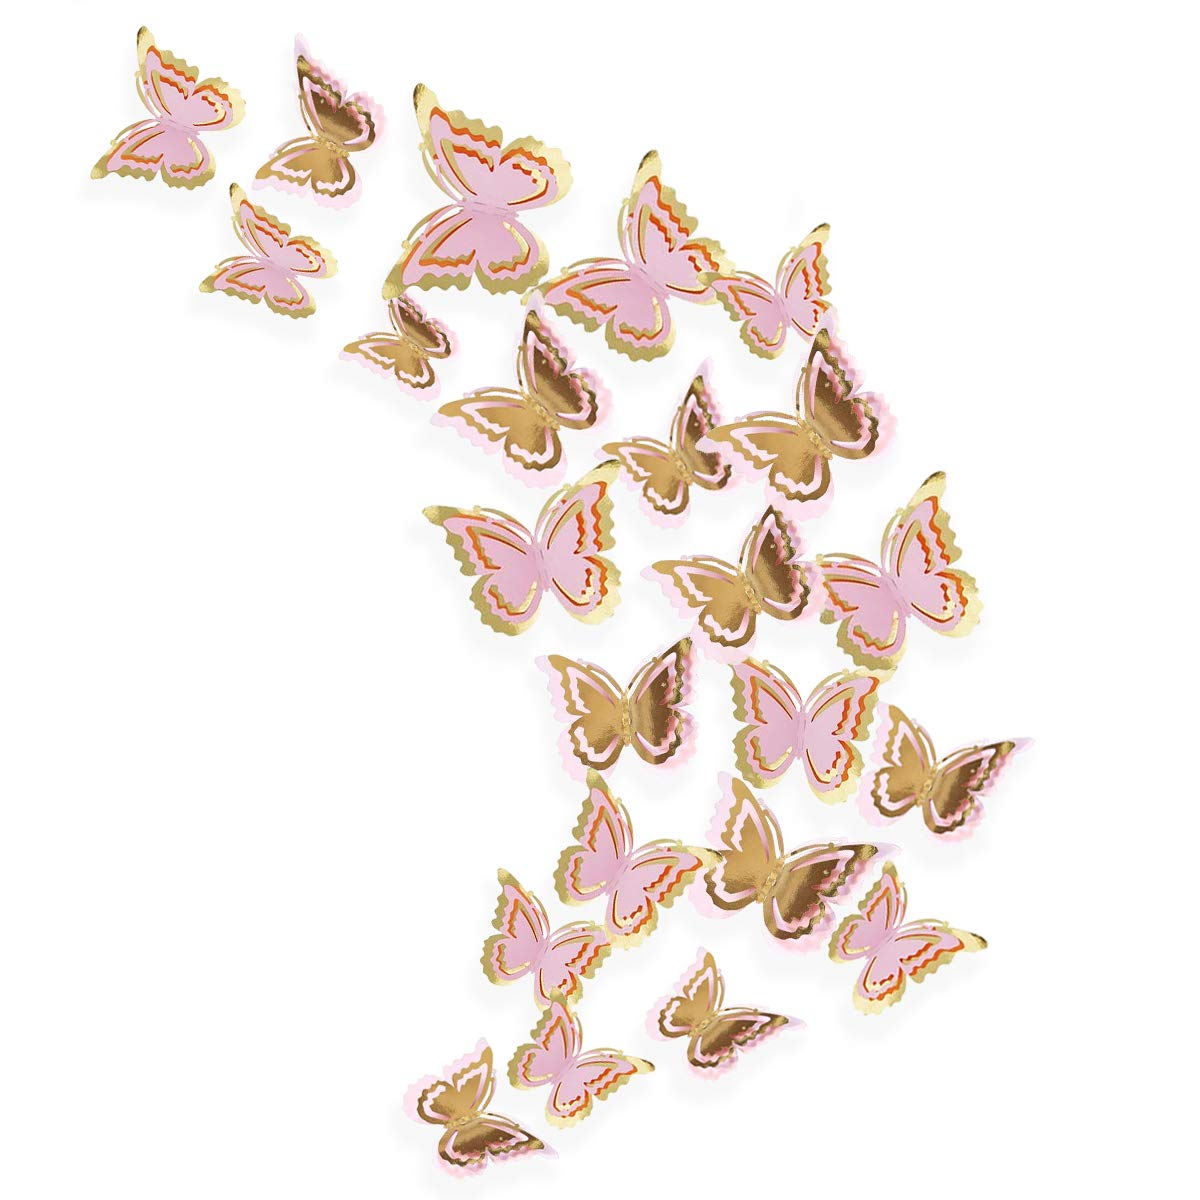 pinkblume Gold and Pink 3D Butterfly Decorations Man Made Removable Butterfly Wall Stickers Decals Mural for Livingroom Kids Girls Bedroom Nursery Party Decor(27 Set)